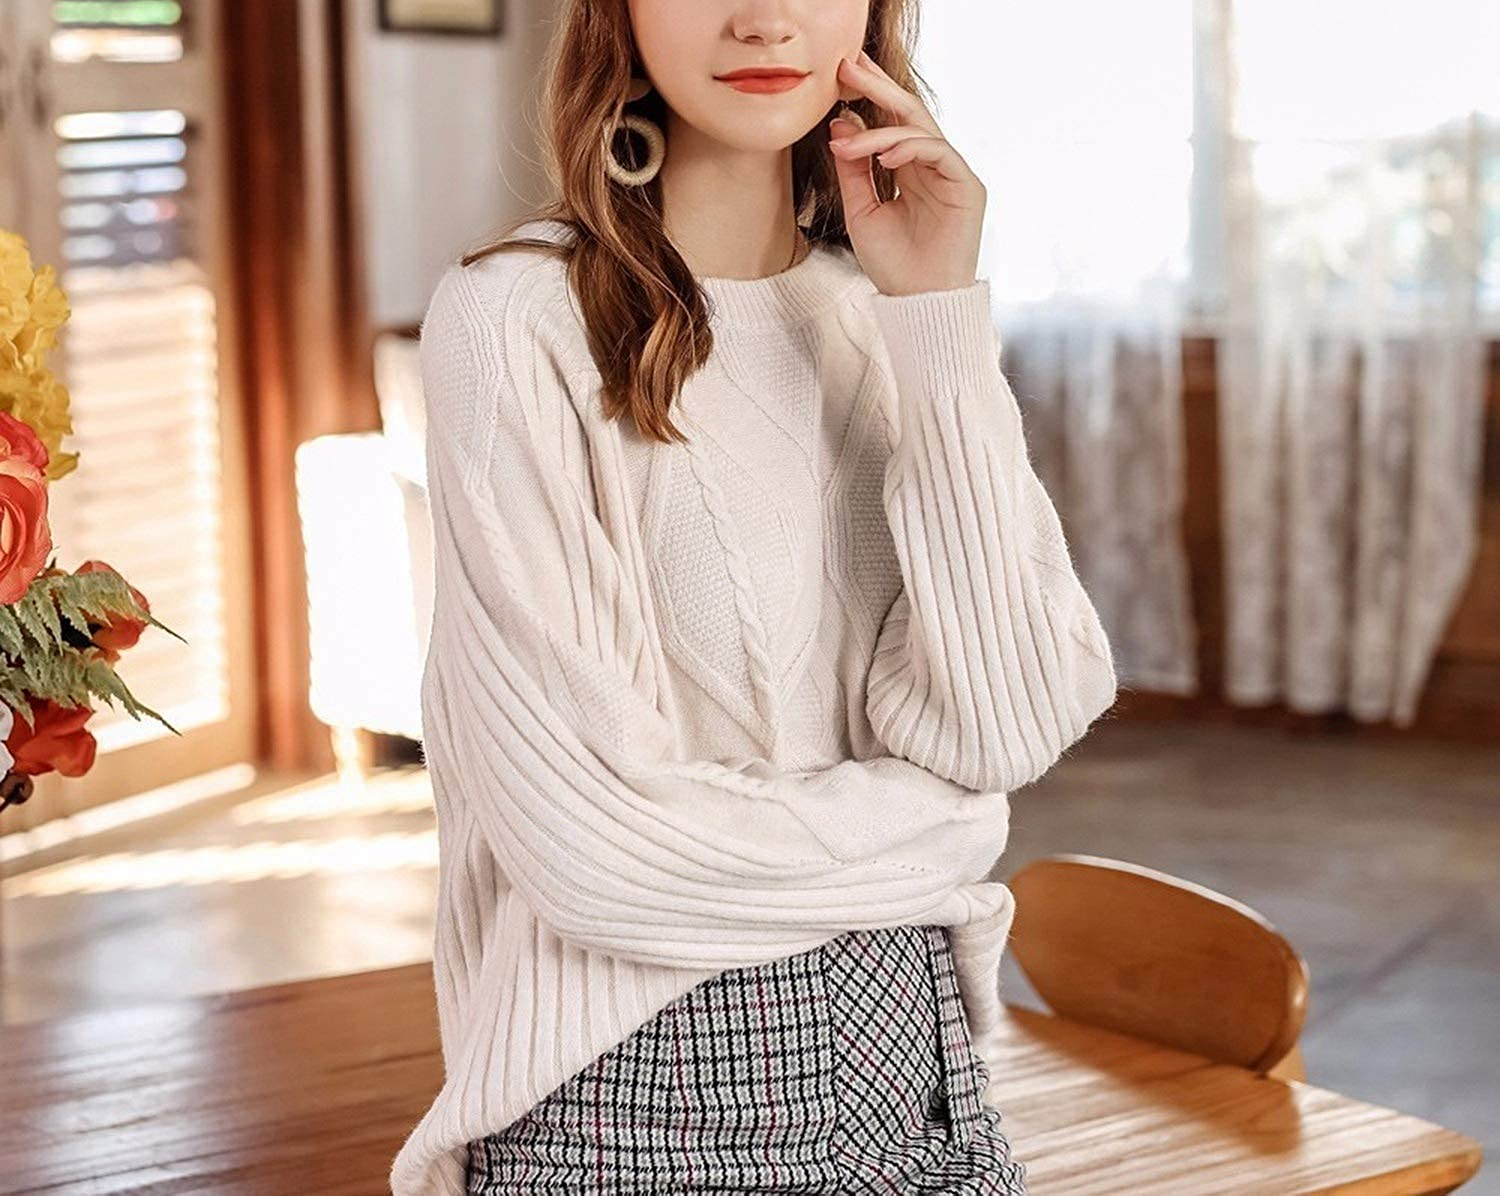 Barry-Home sweater 2018 Autumn Winter Thick Pullovers Women Long Sleeve Casual Warm O Neck